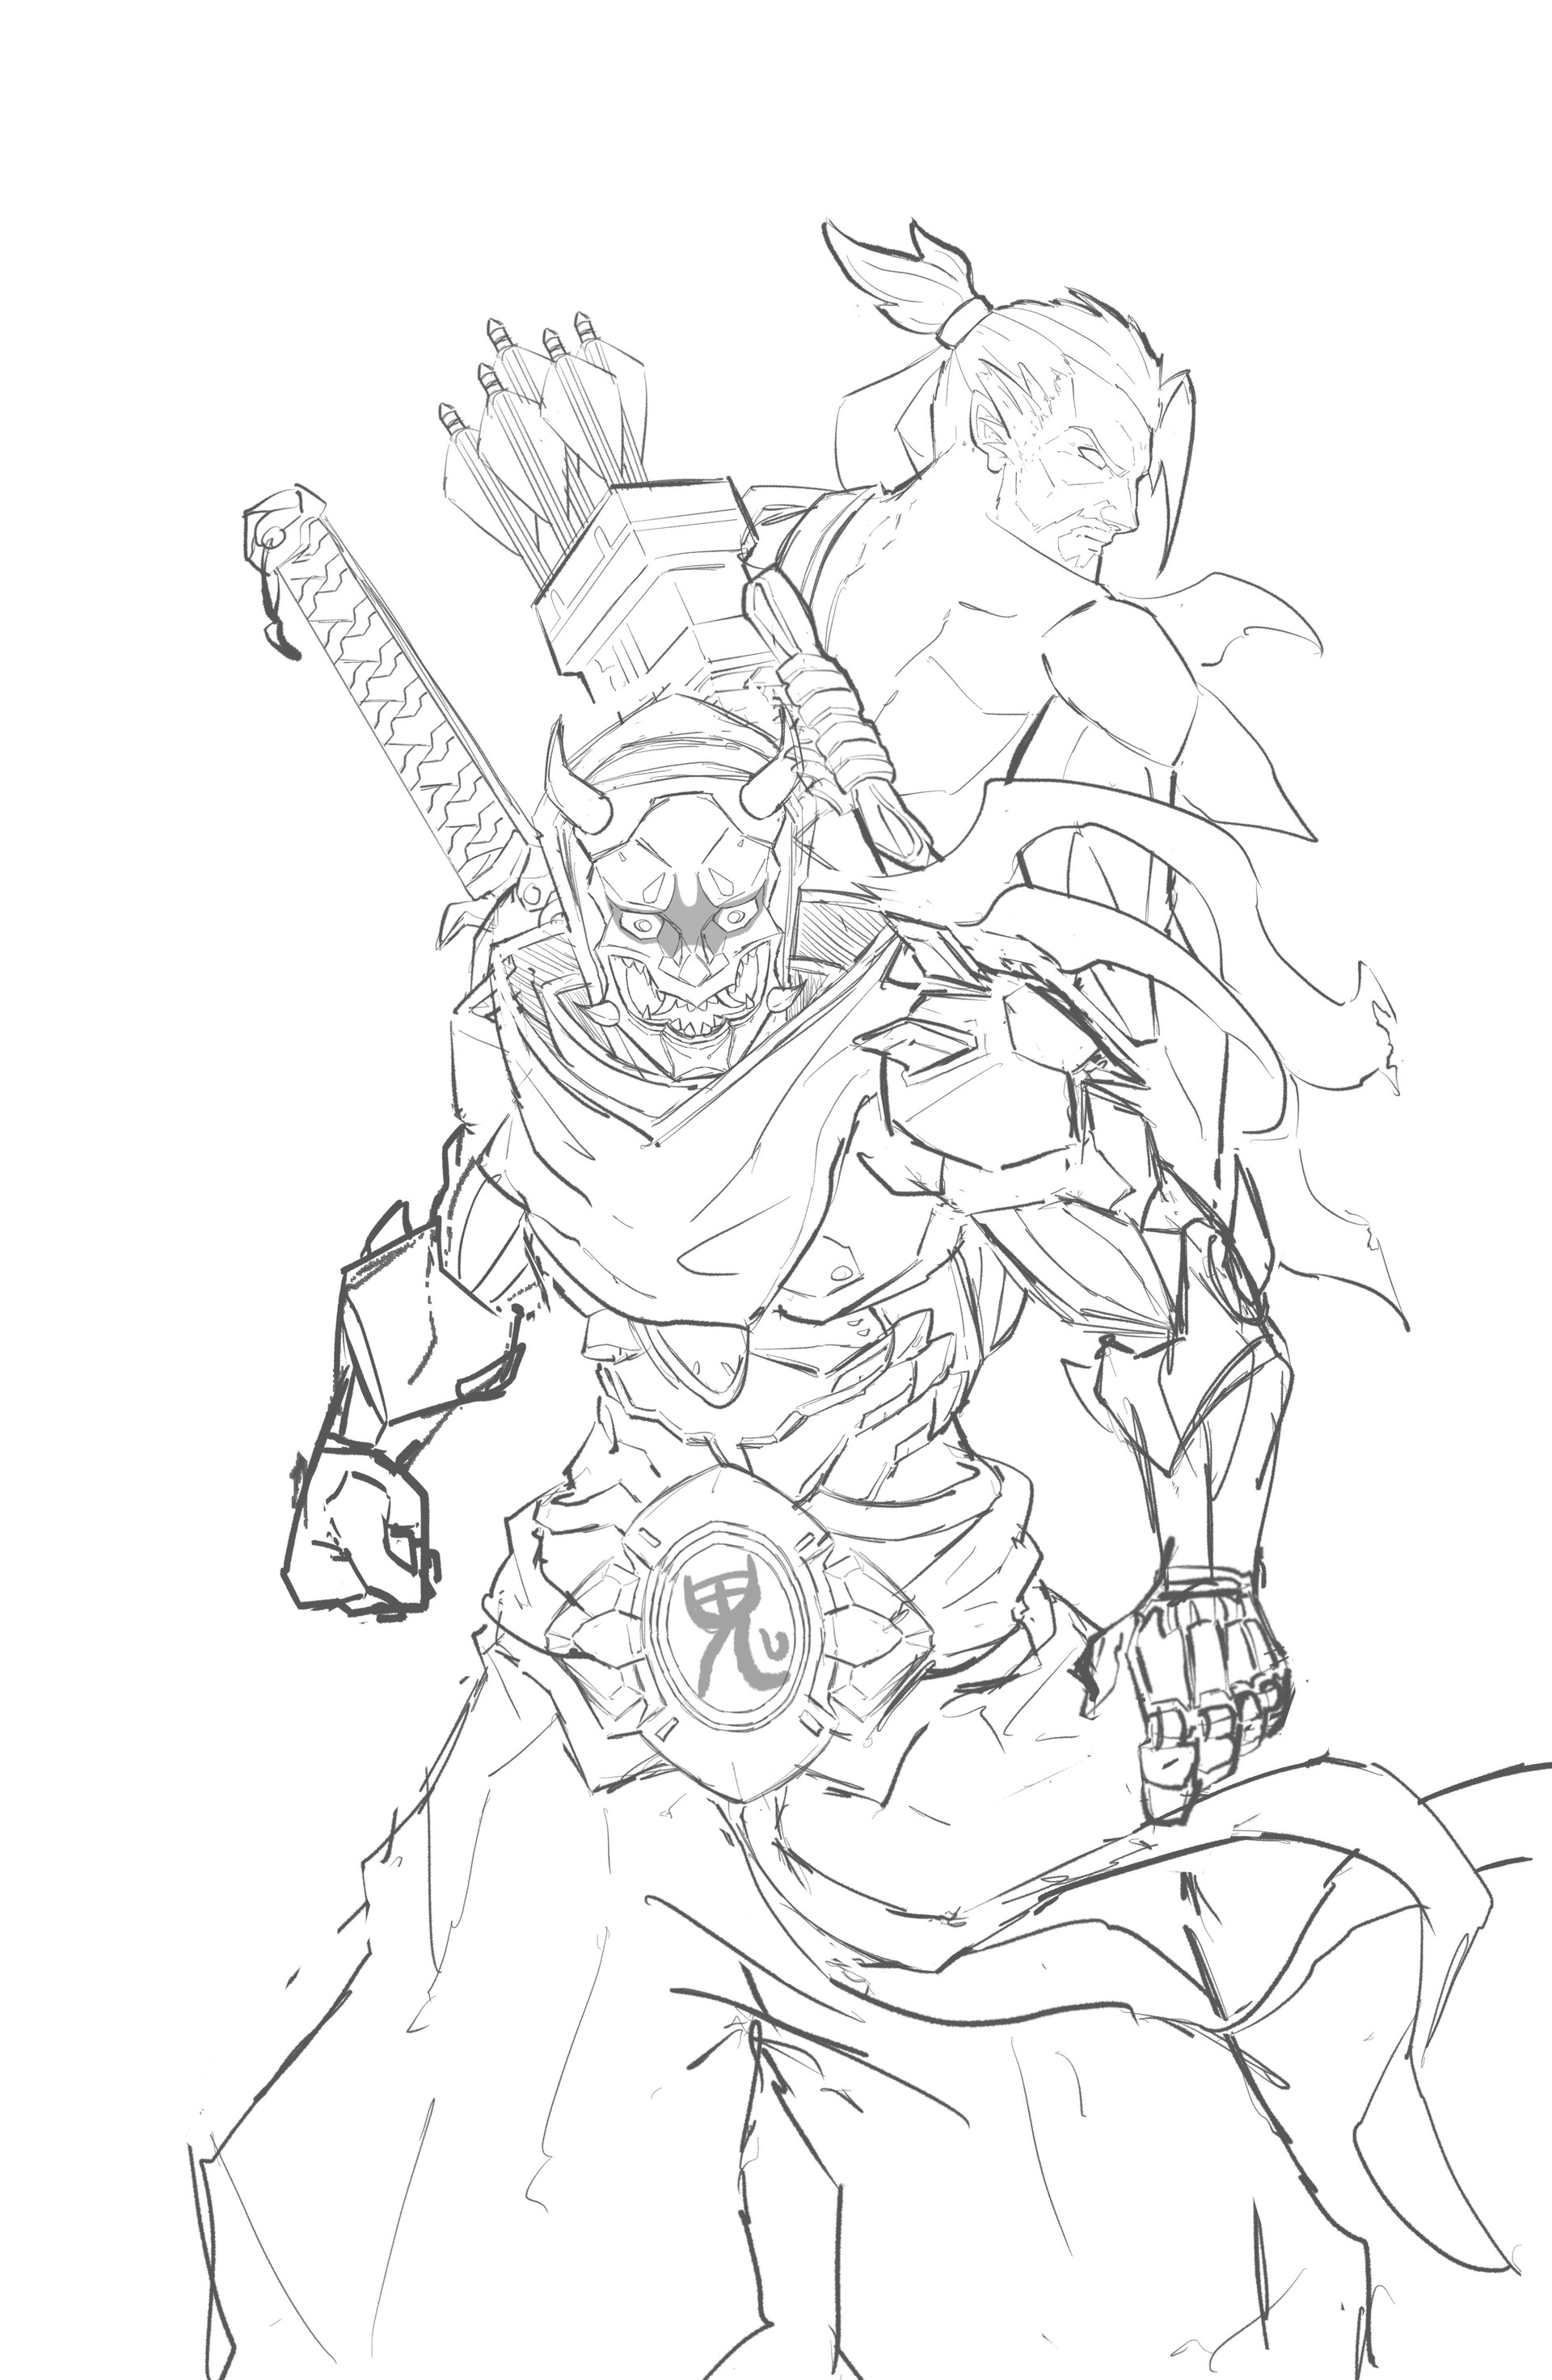 William puekker genji oni overwatch for Overwatch genji coloring pages